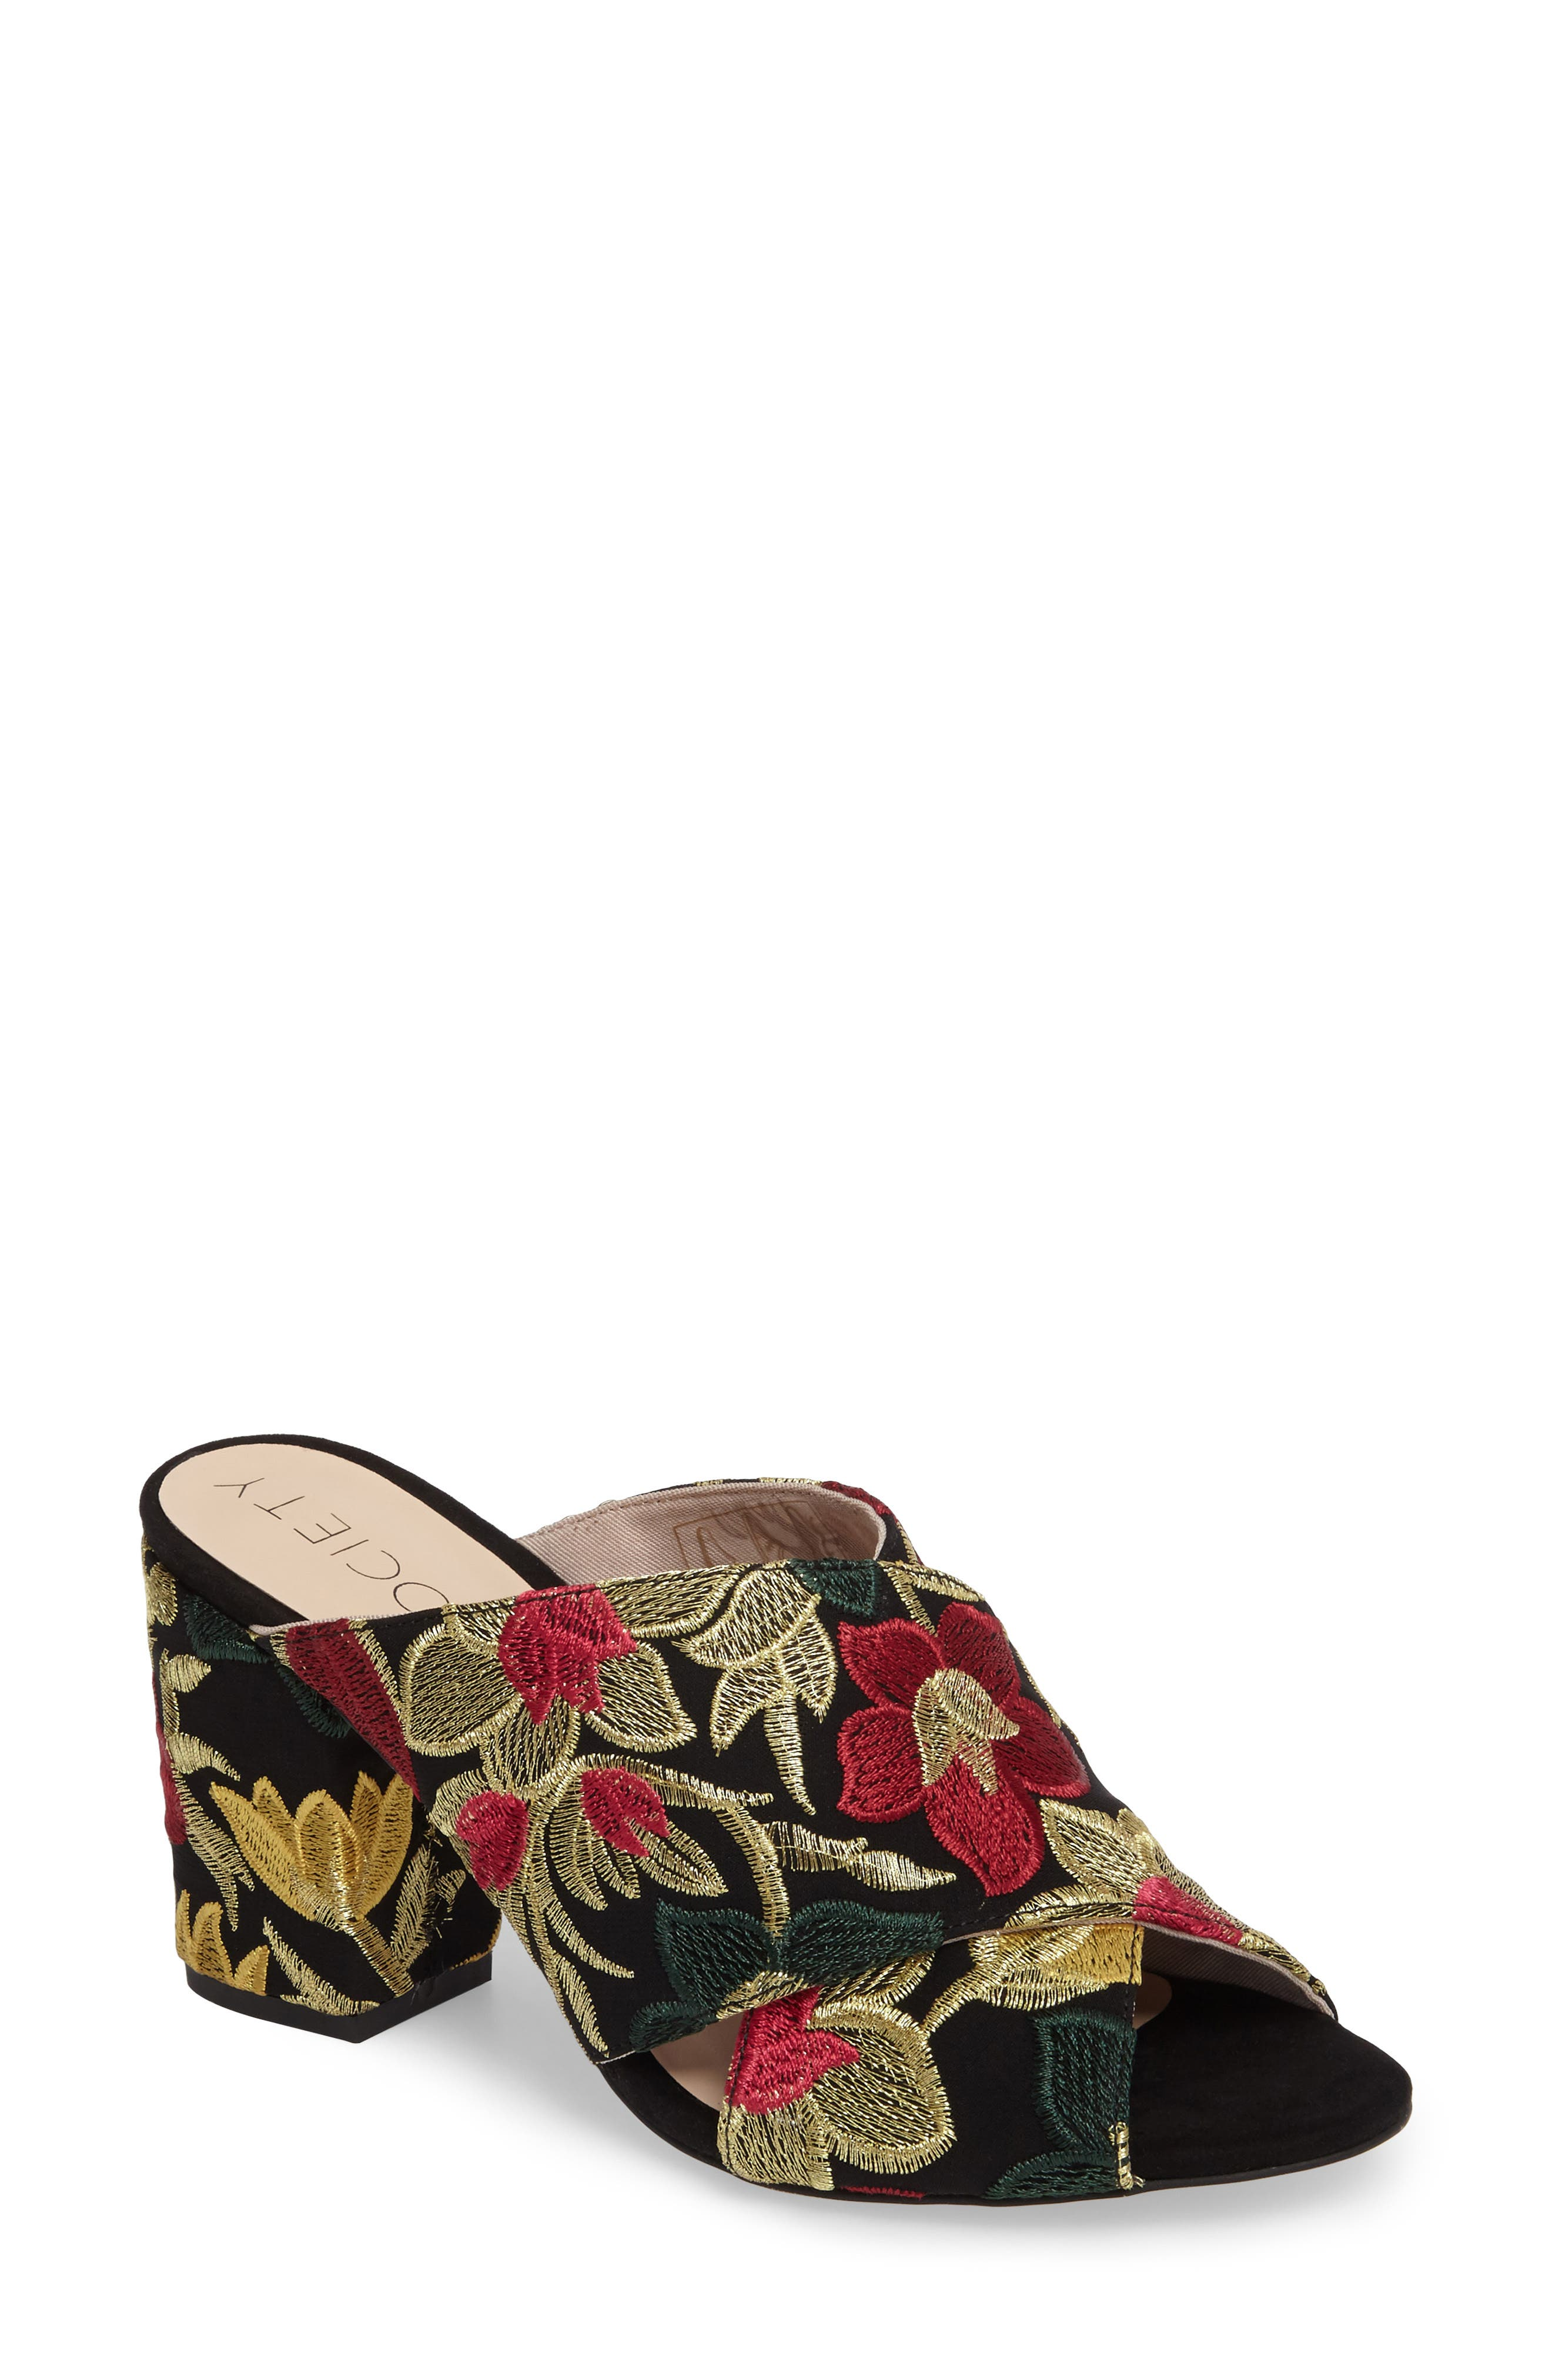 Luella Flower Embroidered Slide,                         Main,                         color, Gold Embroidery Textile